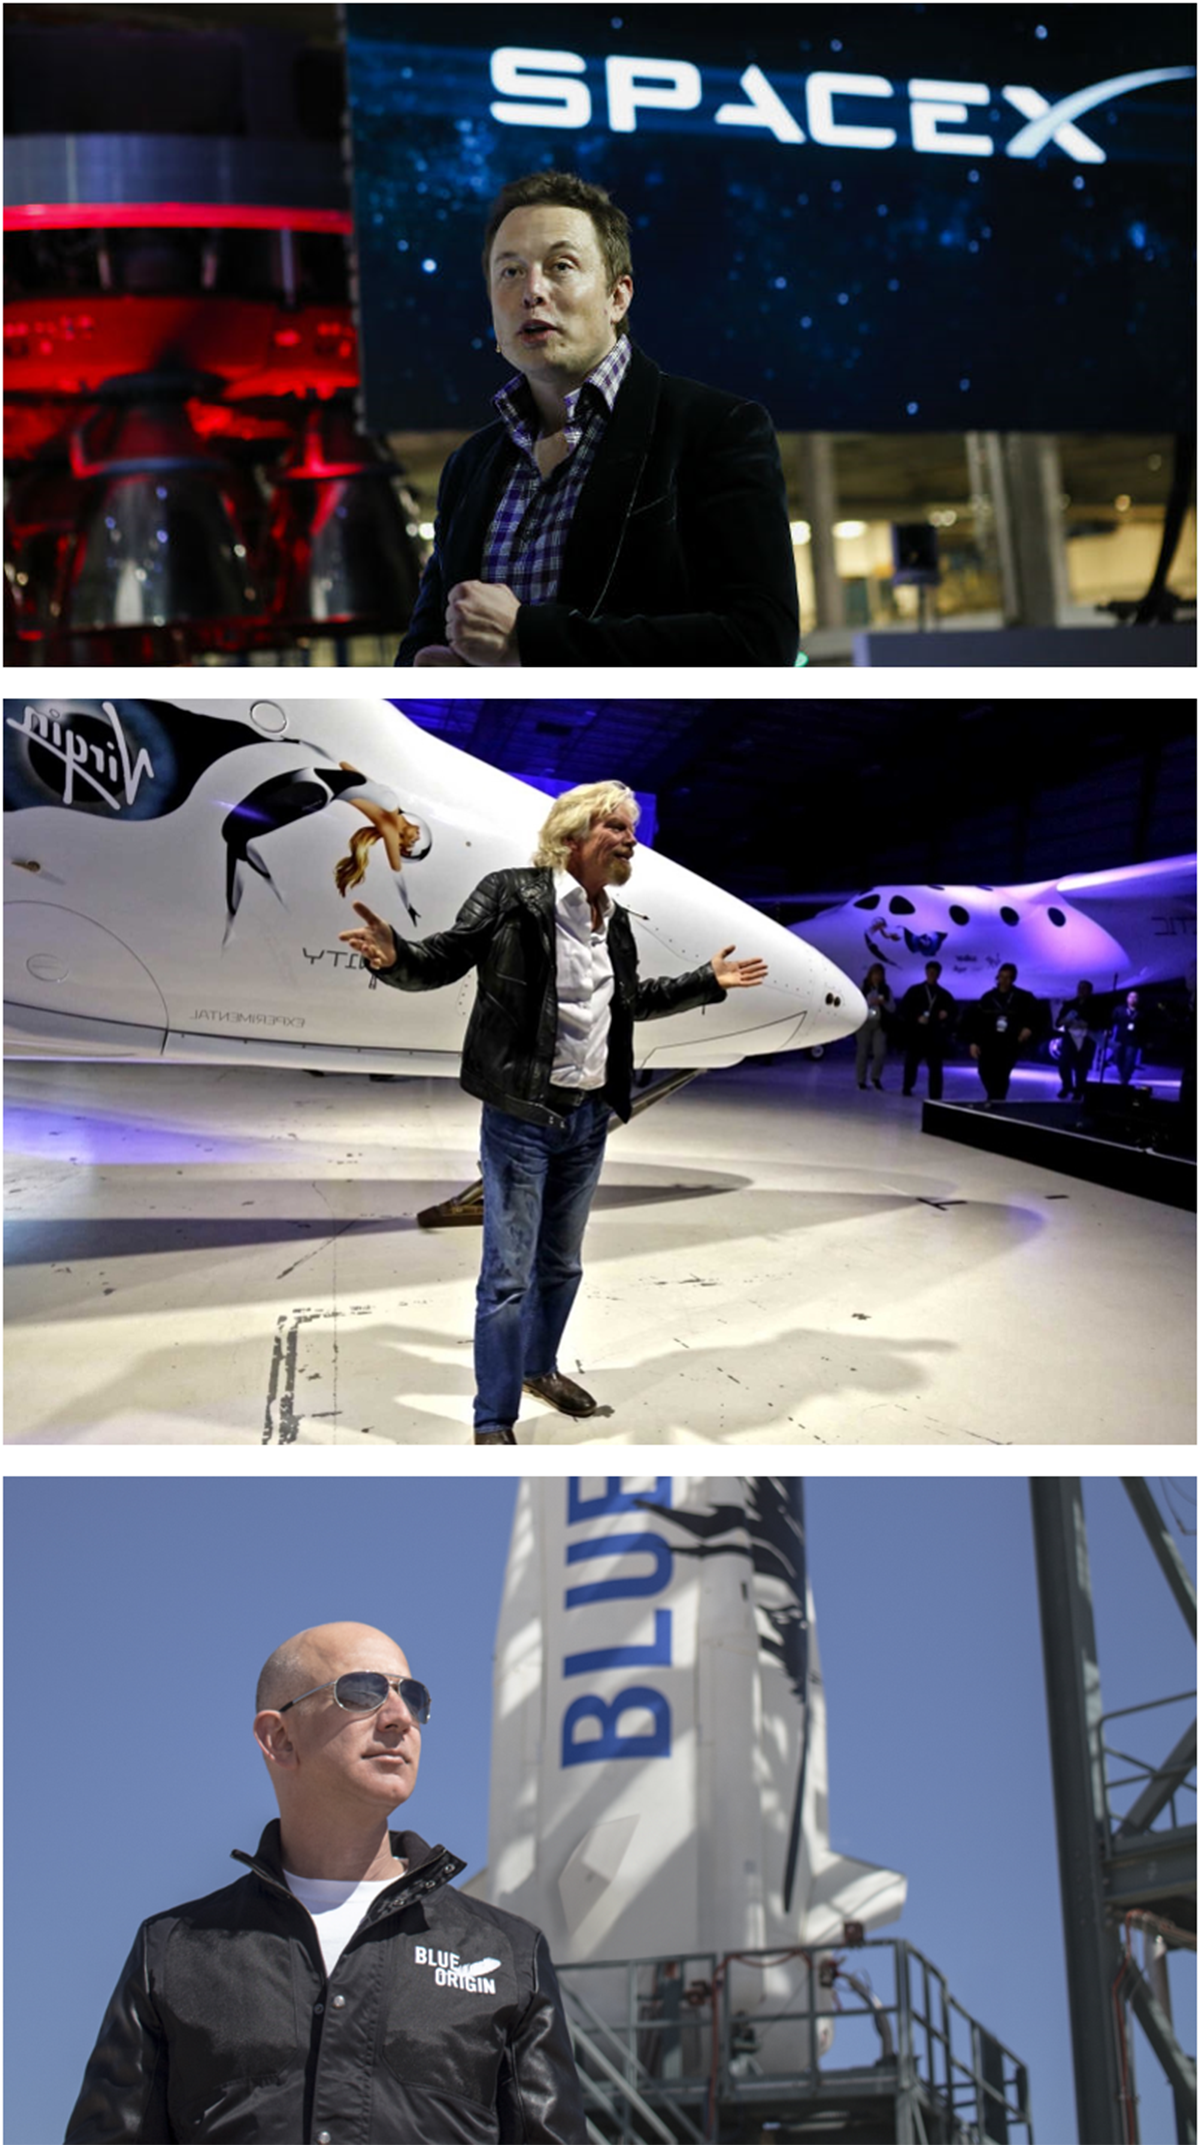 ENTREPRENEURS TAKE ON SPACE TRAVEL Neither Musk, Branson nor Bezos (top to bottom) invented space travel, nor its associated technologies nor anything close to it. They are personalities, figureheads, building businesses that rely on the experience of scientists and engineers whose knowledge was built on the foundation of years of public investment that preceded them.